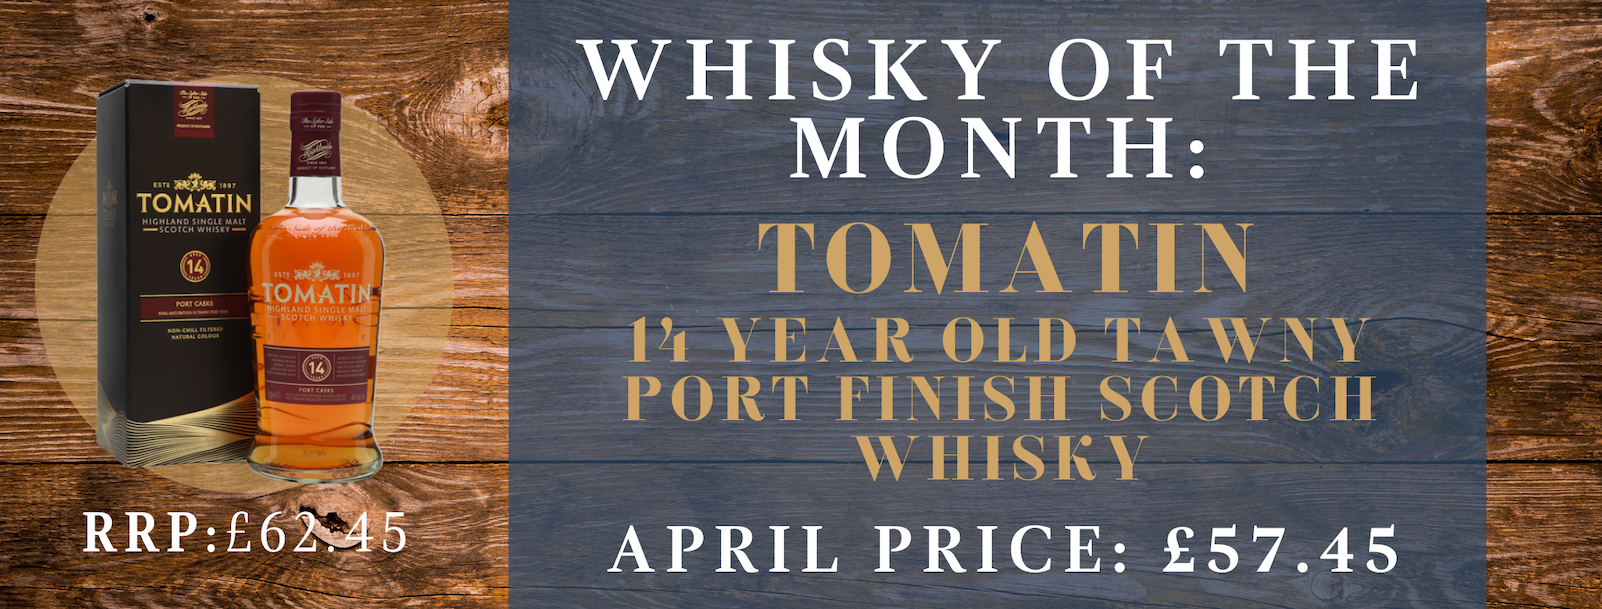 April whisky of the month banner